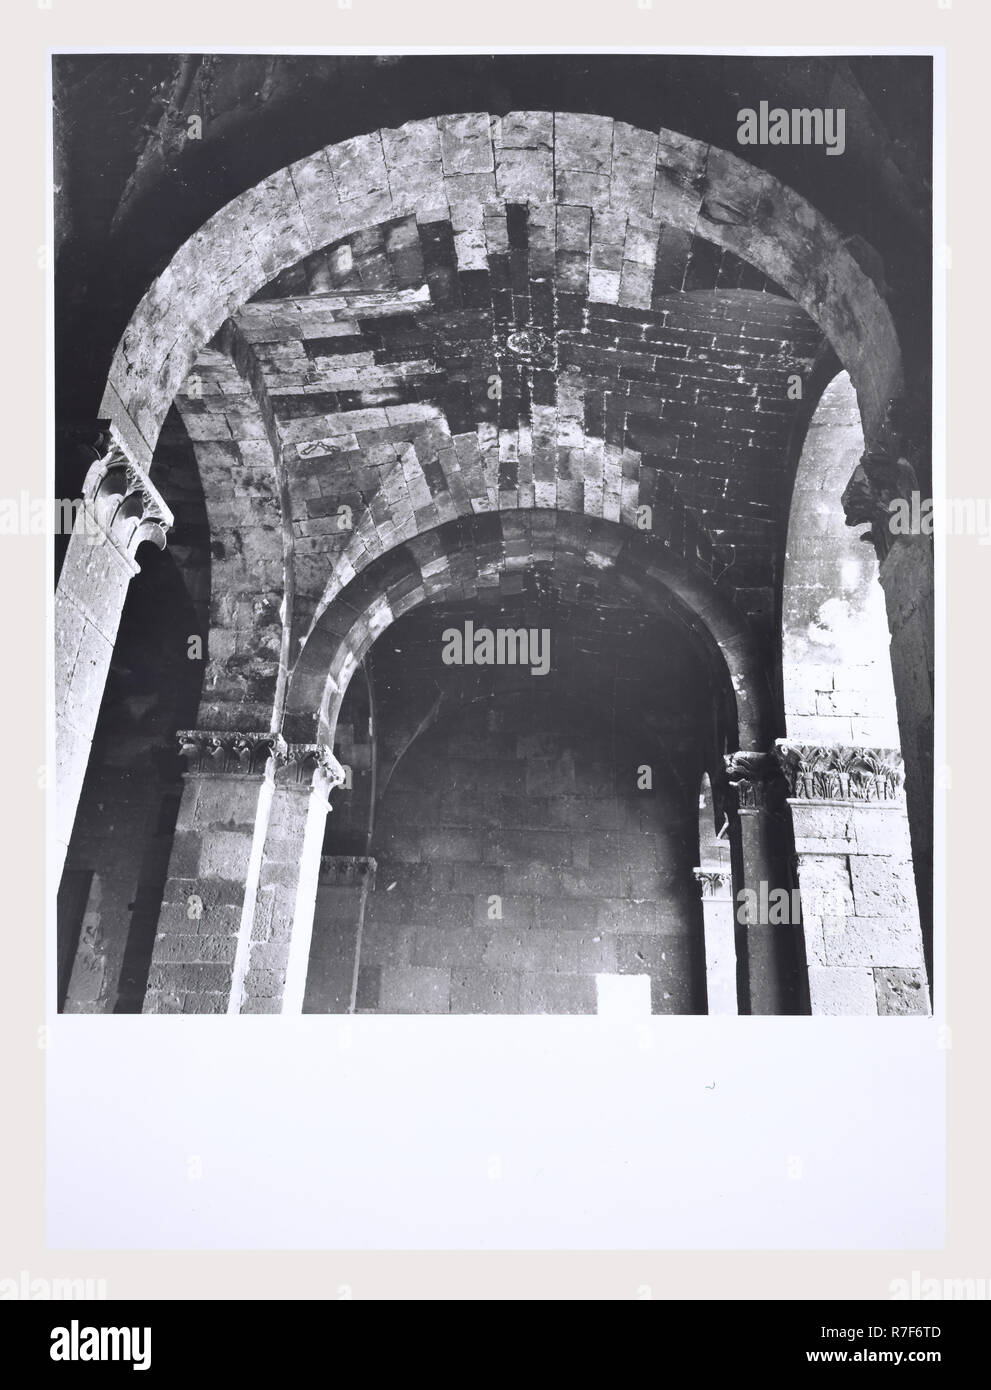 Il Portico Di Sam 1958 60 high resolution stock photography and images - alamy